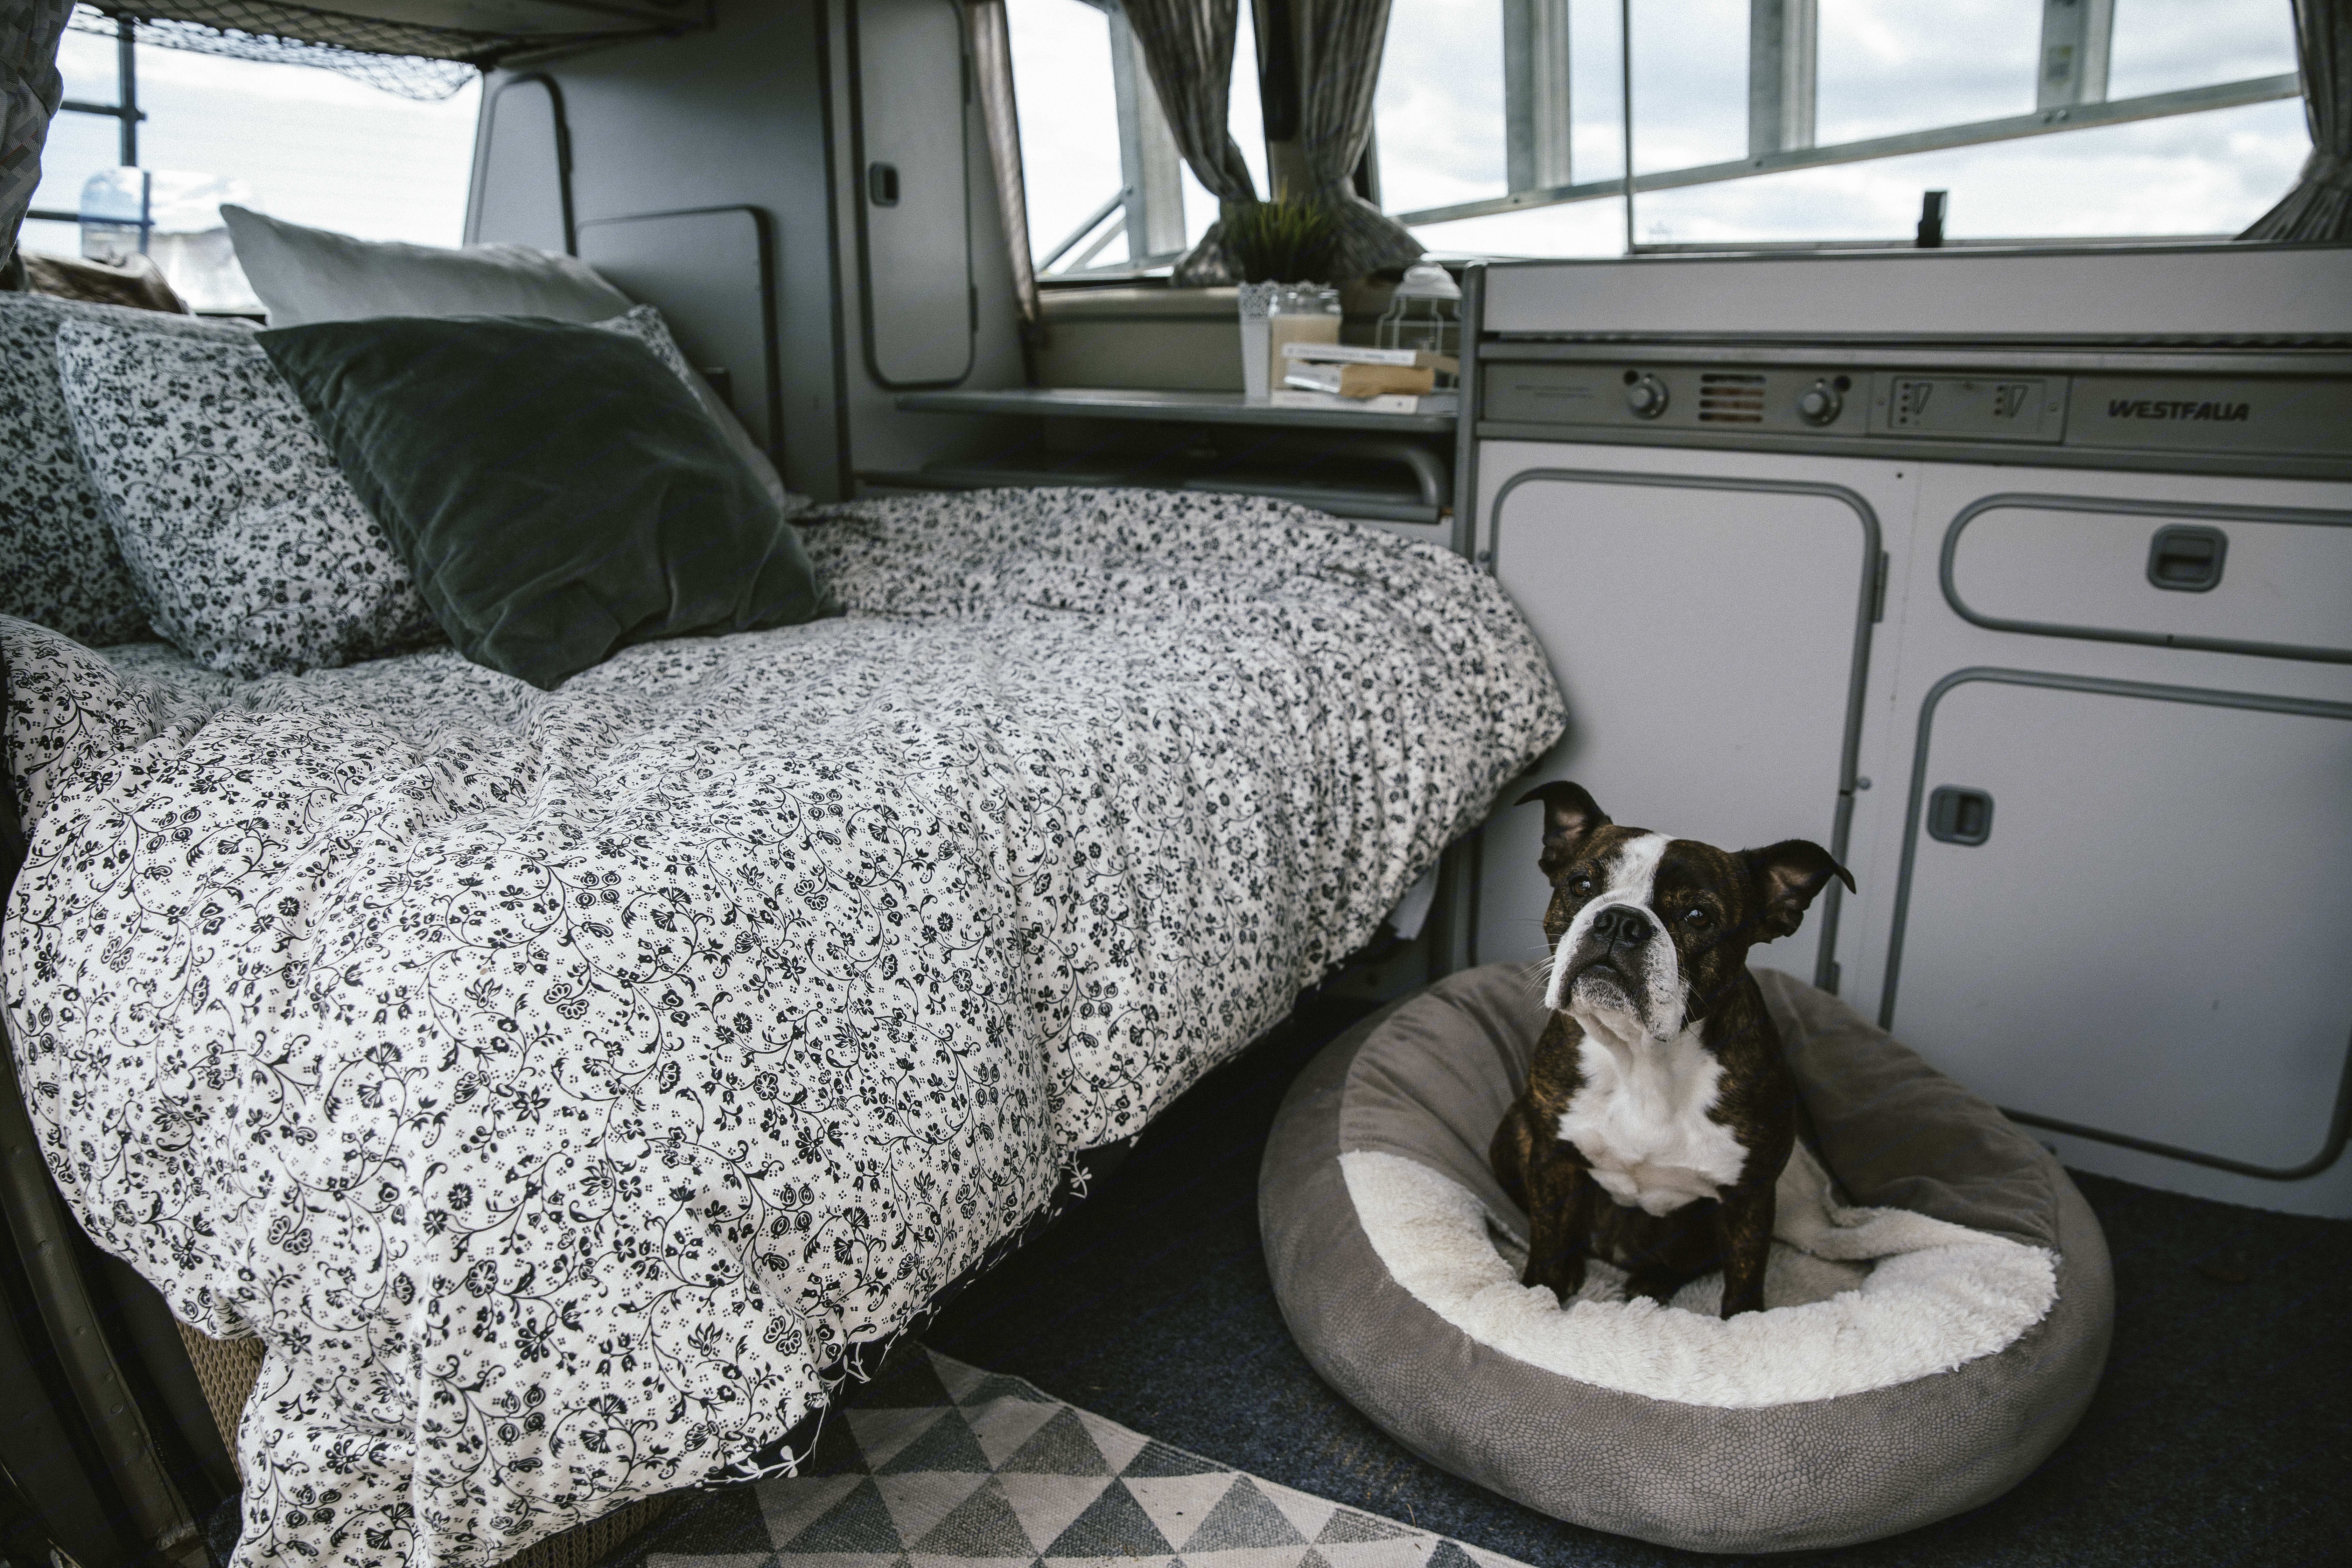 Your dog, are for sure, welcome for a little fee of 40$. I need to clean very deeply to remove all the trace of your badass copilot dog...in case someone are allergic after you. Like this everyone can enjoy there roadtrip ;). Volkswagen T3 Westfalia 1985